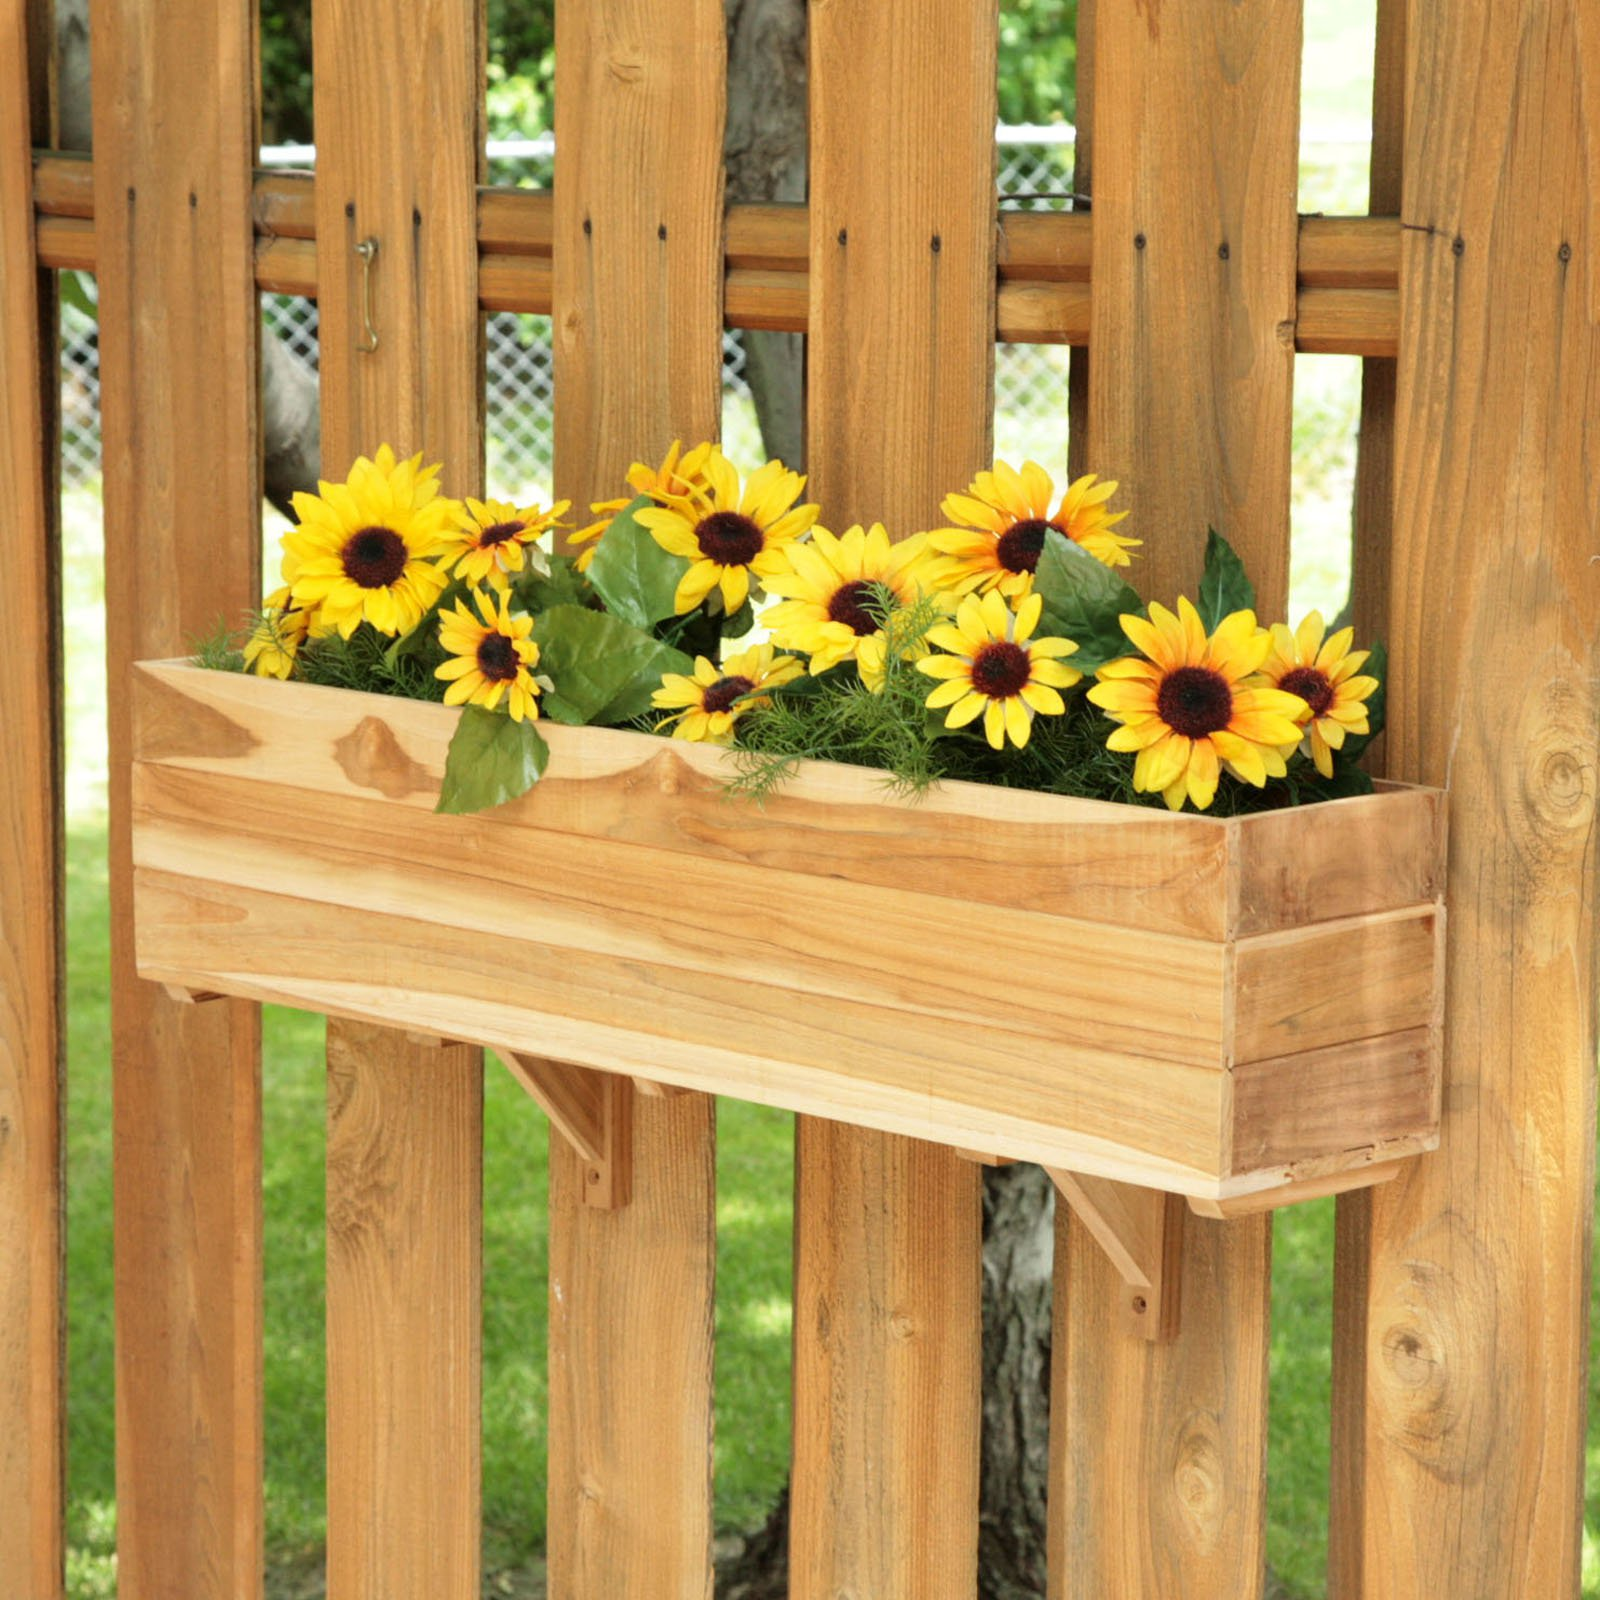 Deck Rail Planters | Flower Box Brackets for Vinyl Railing | Deck Hangers for Plants